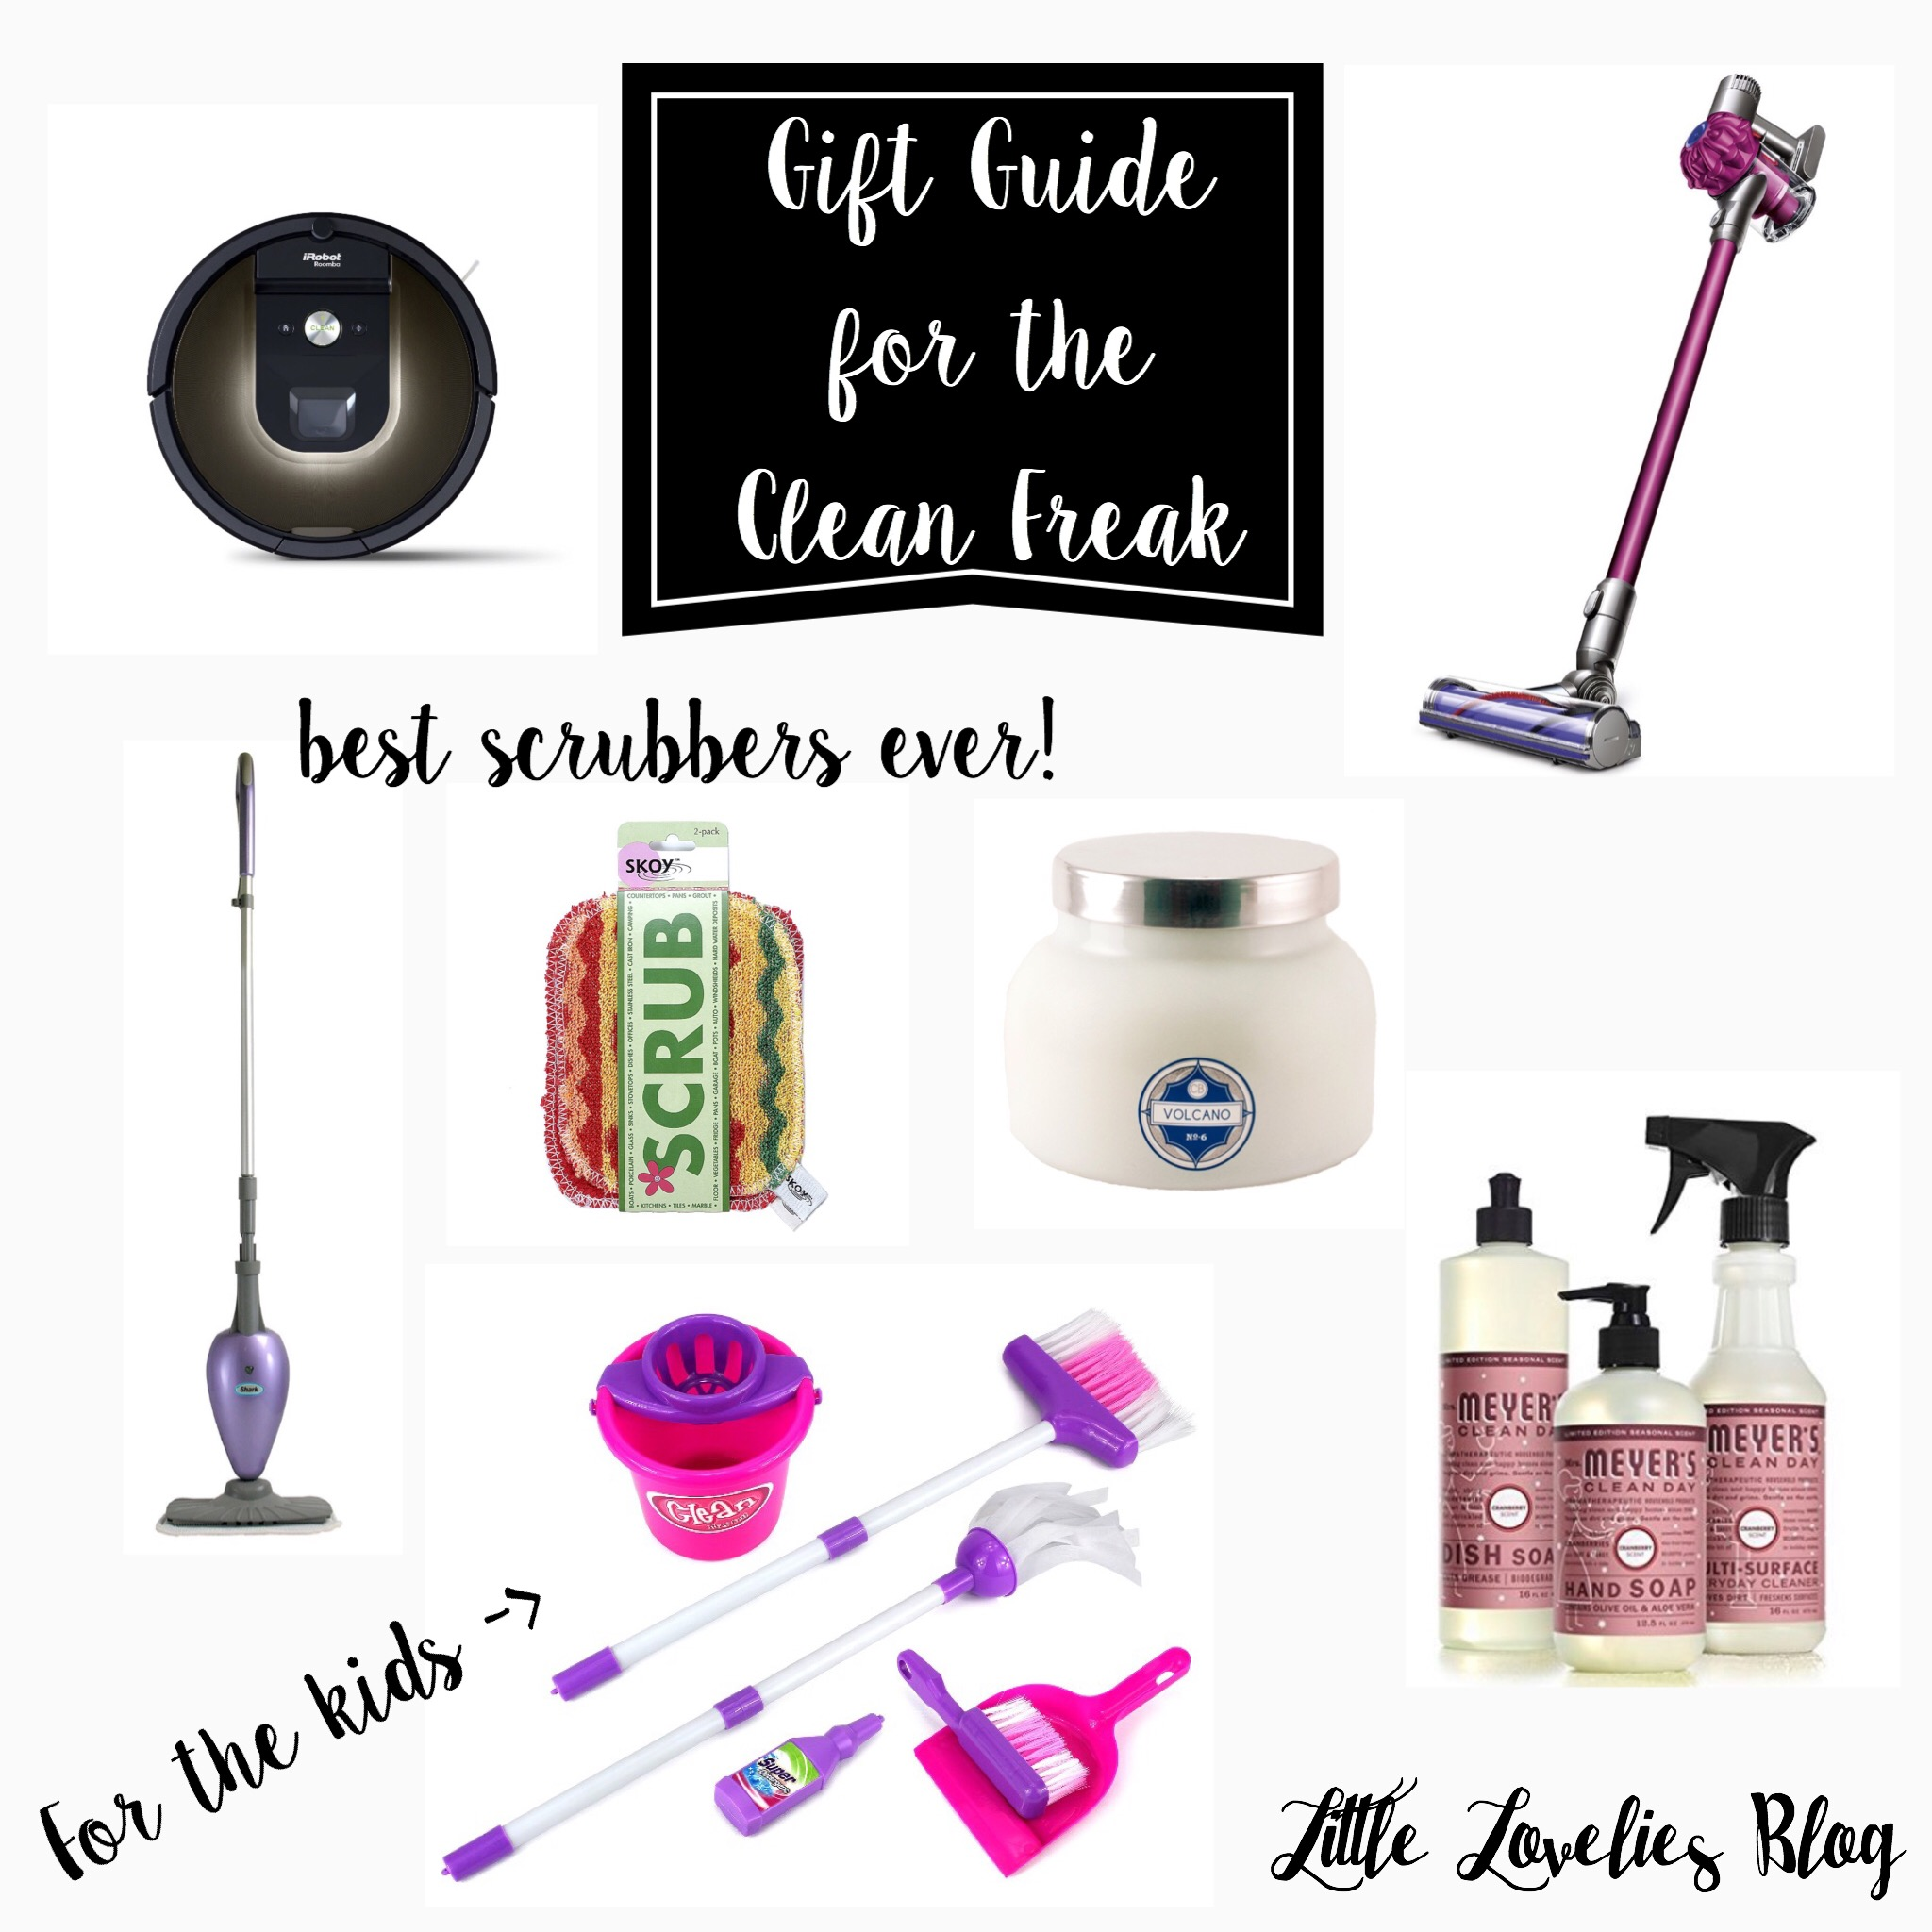 Holiday Gift Guide for the Clean Freak - Little Lovelies Blog